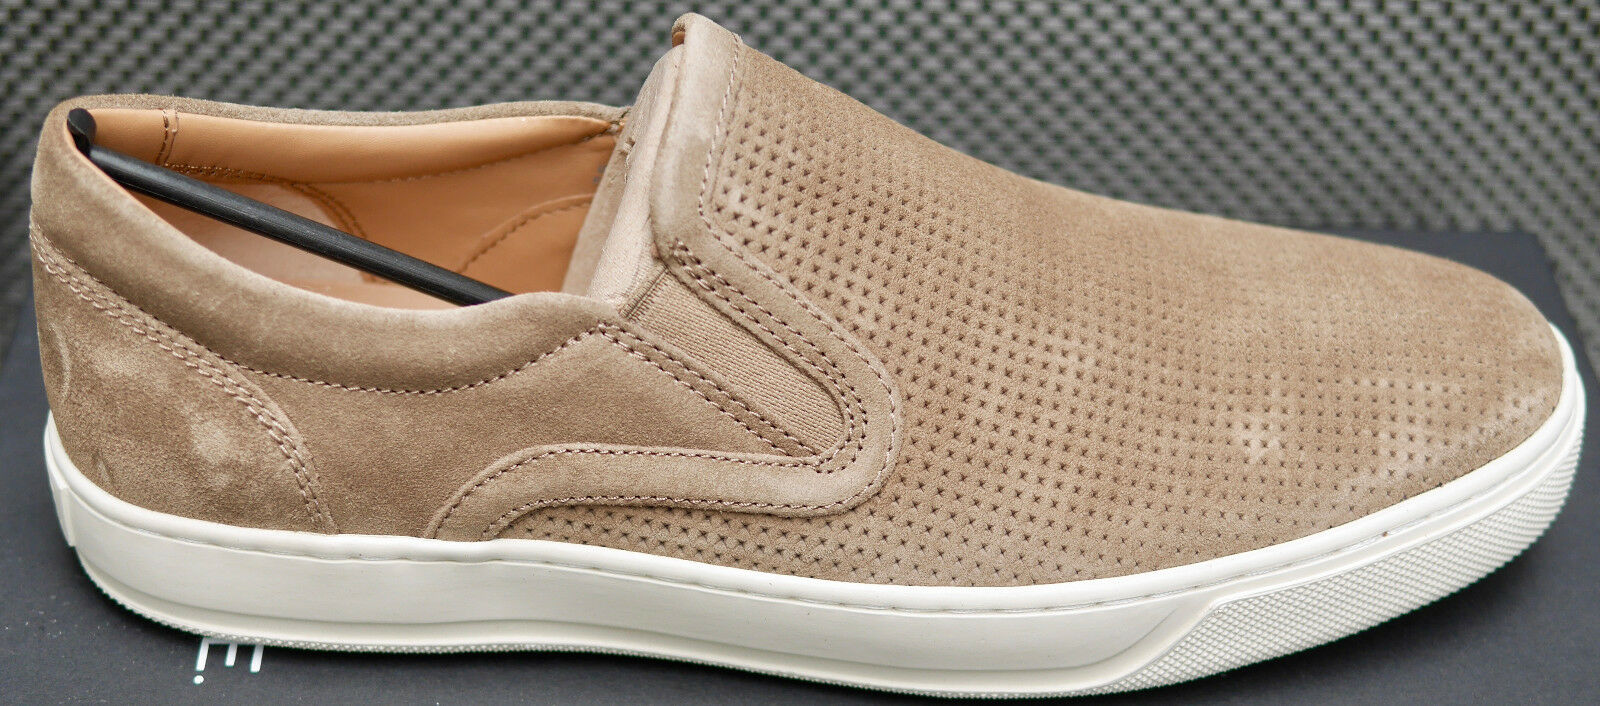 VINCE Ace Flint Suede shoes. Size 9 NEW in BOX